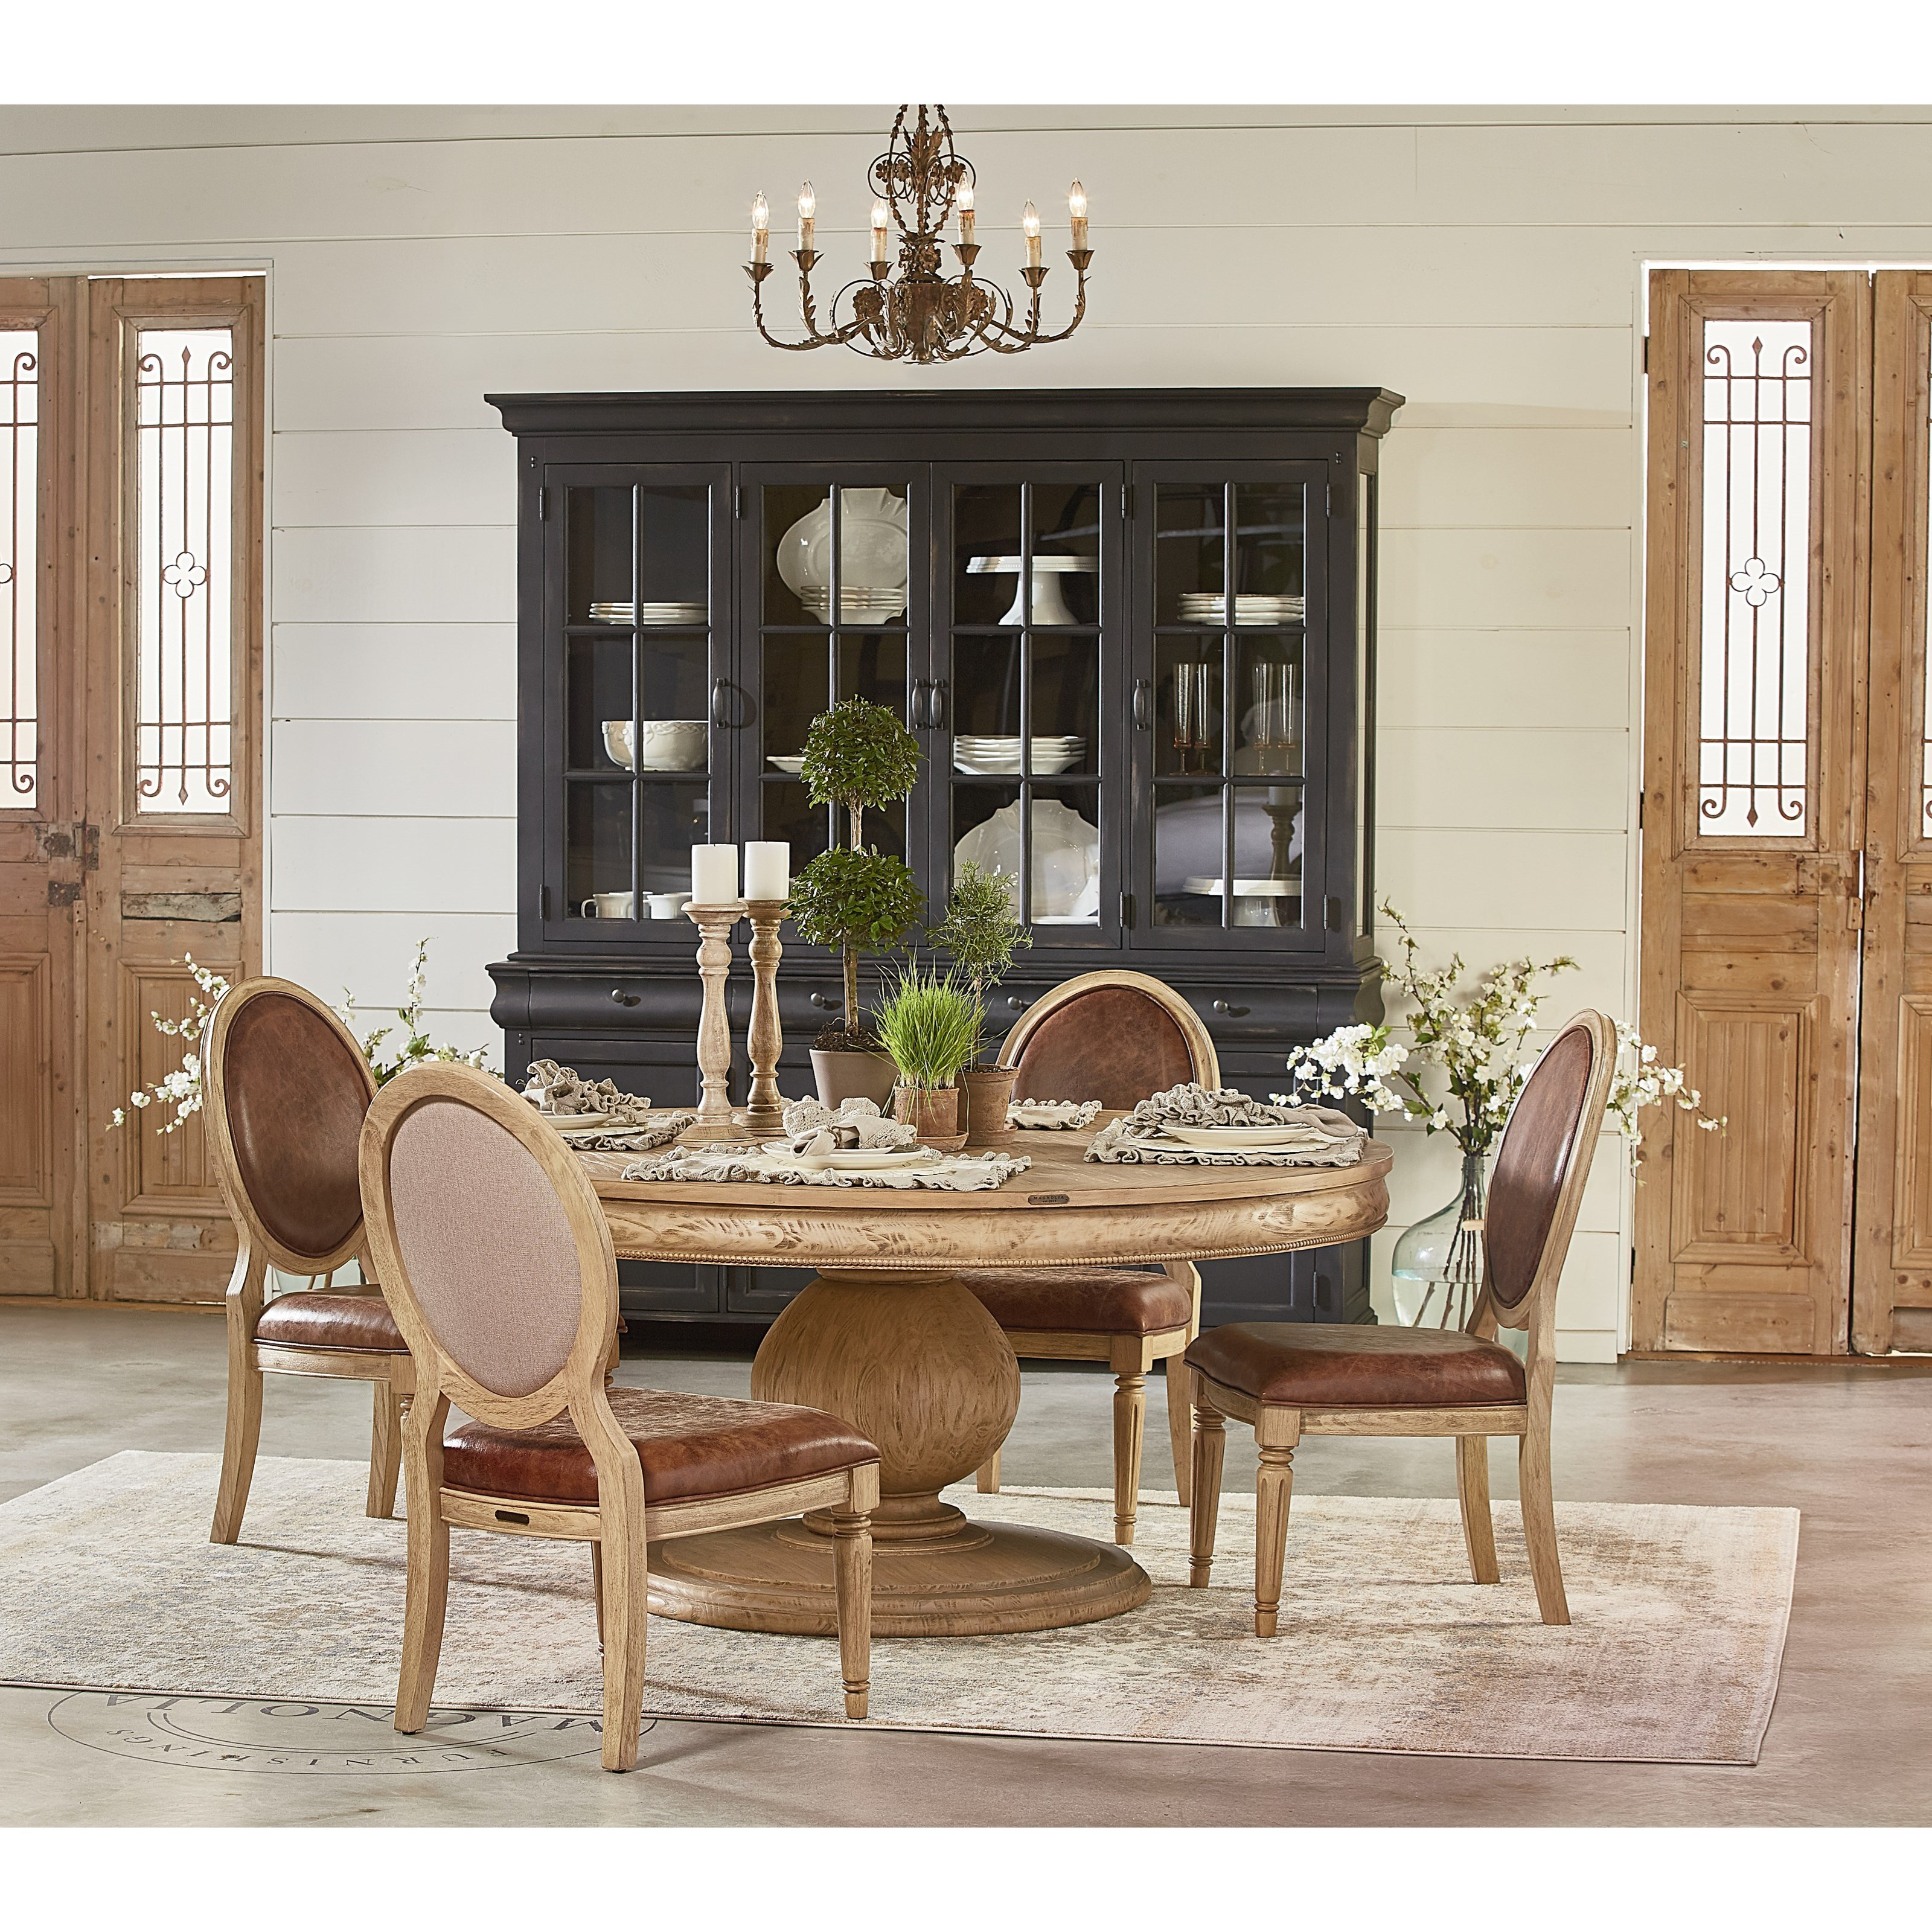 round table and chair set - Breakfast Table And Chairs Set